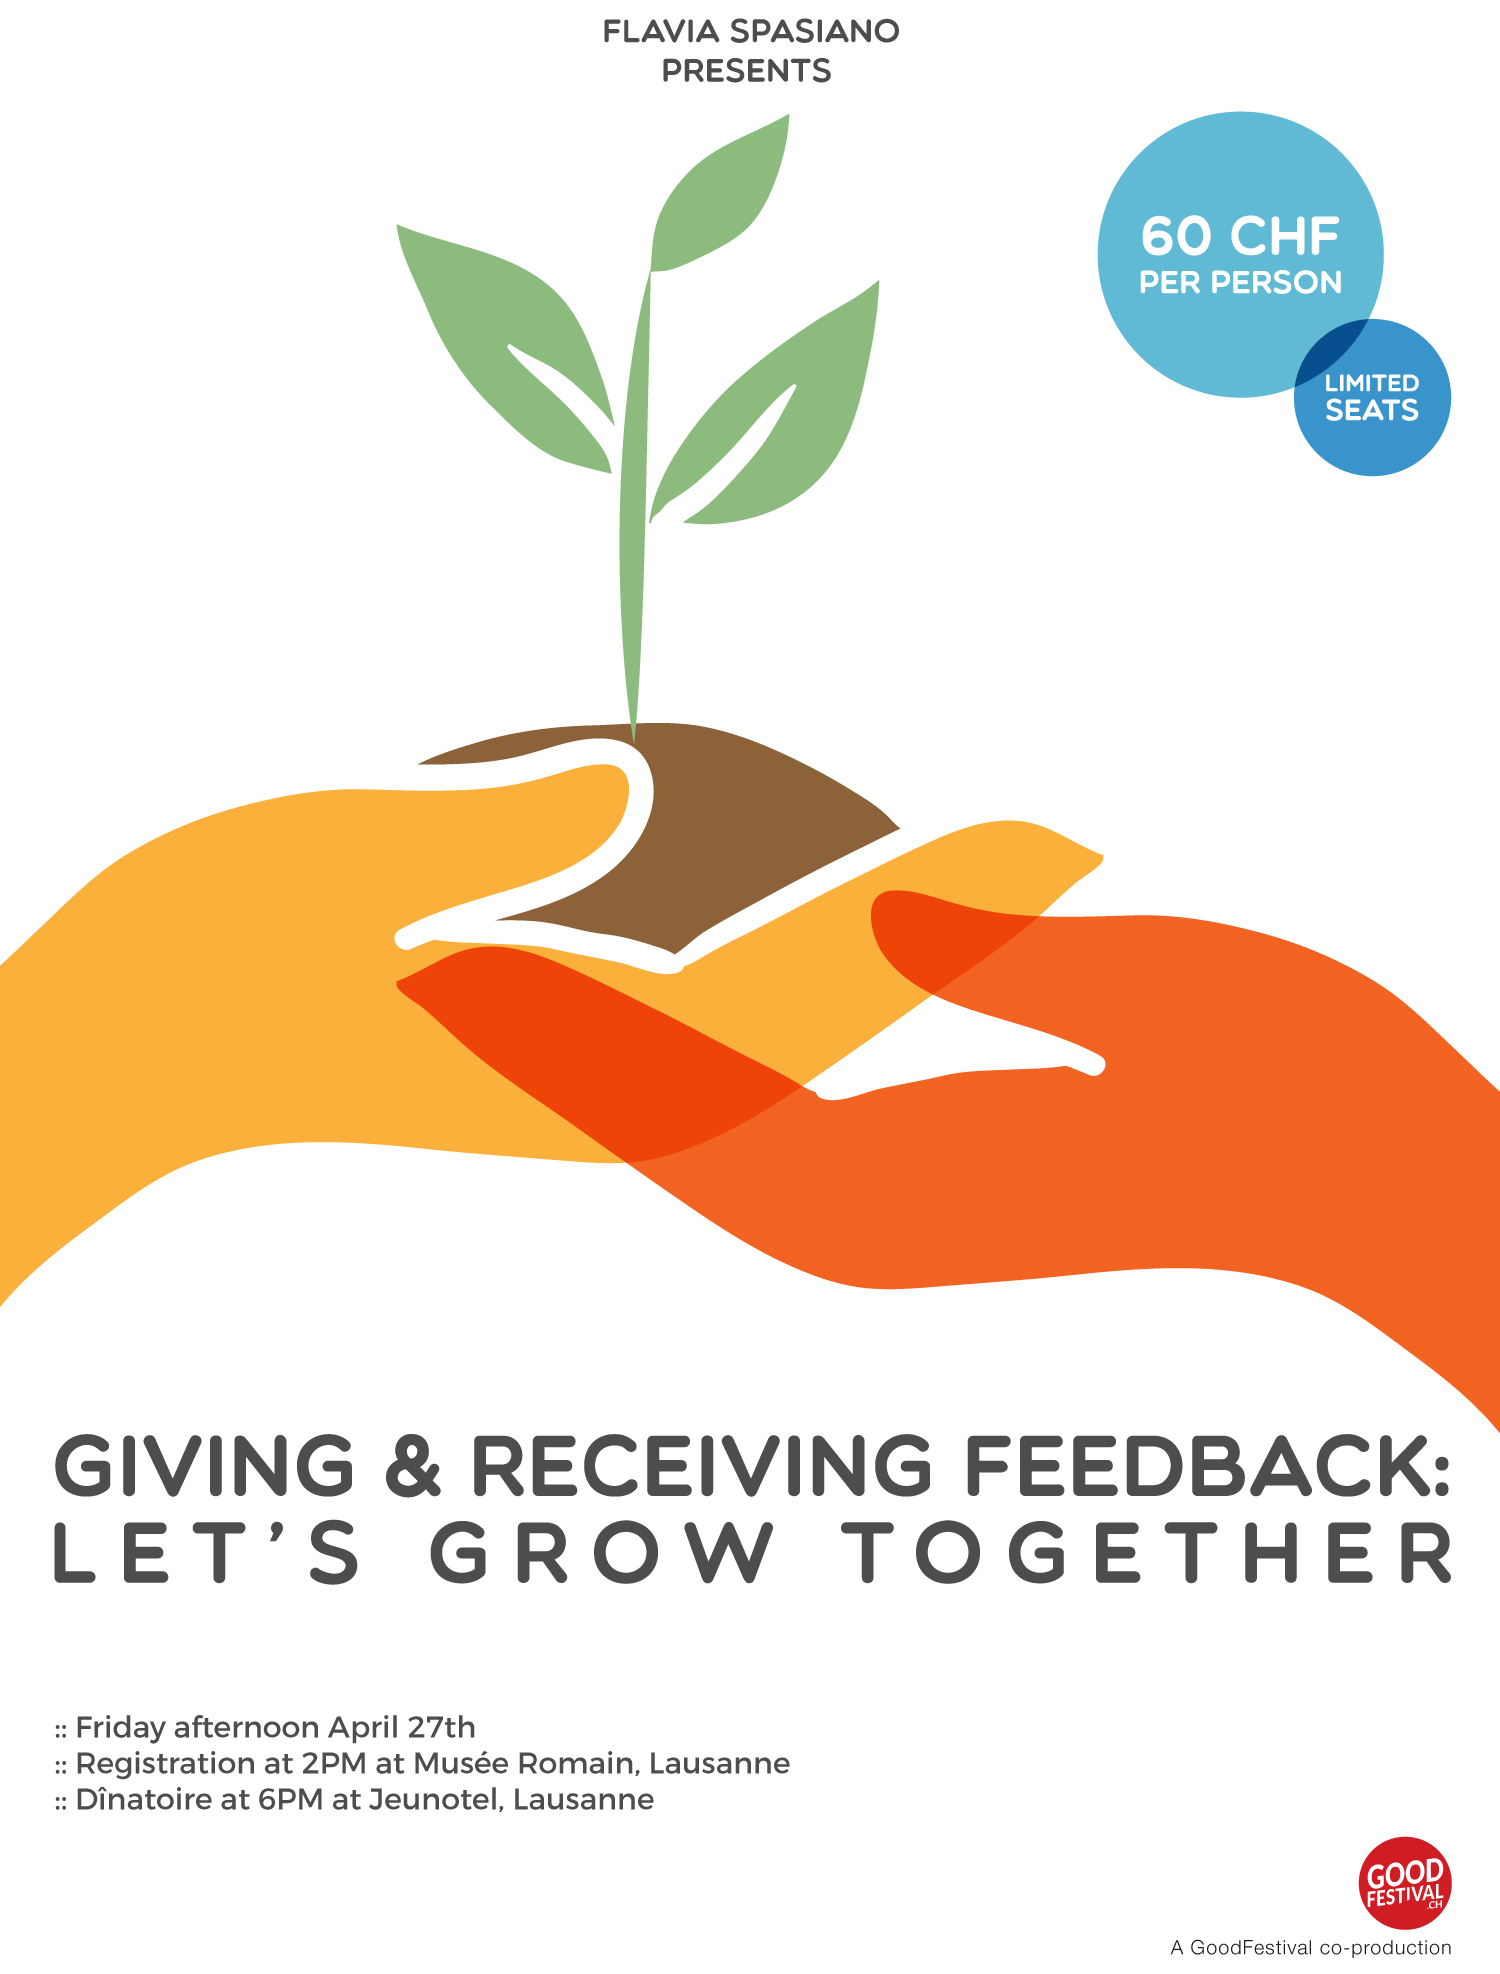 Giving & Receiving Feedback: Let's grow together by Flavia Spasiano